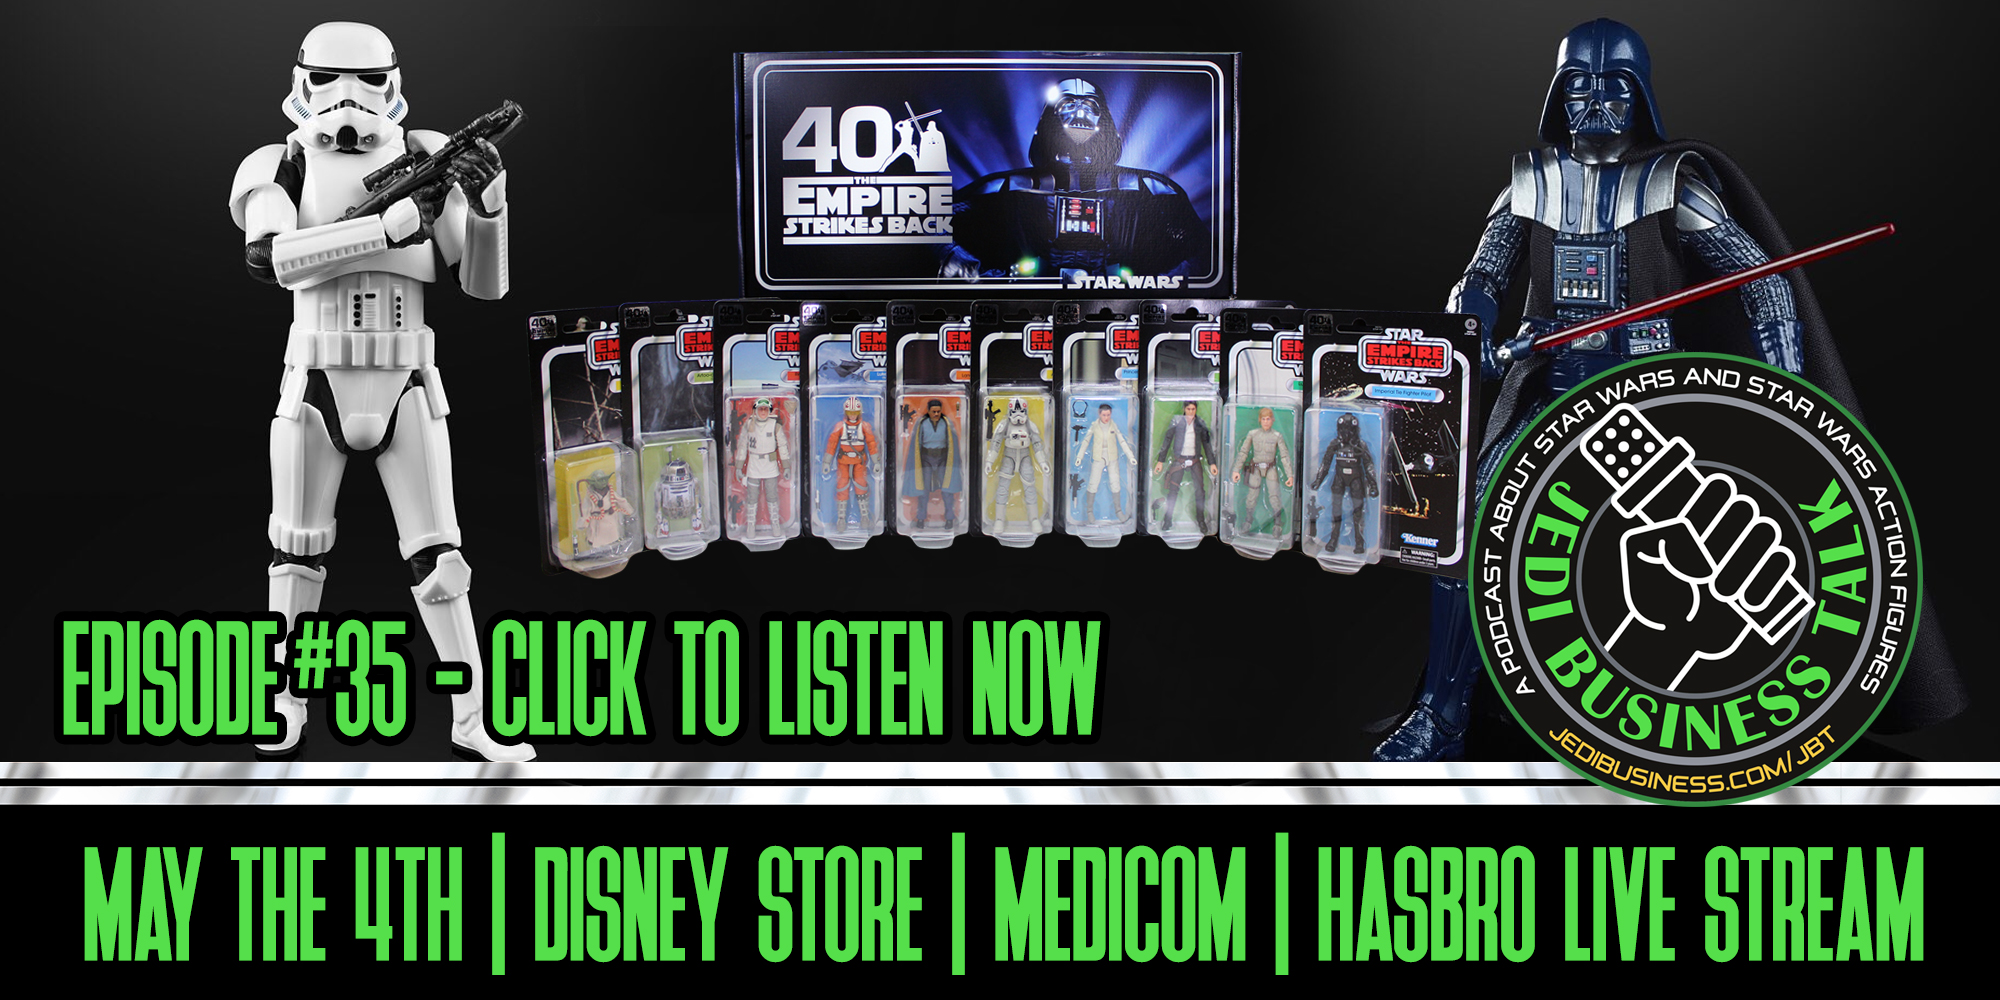 JBT Jedi Business Talk - May The 4th, Disney Store, Medicom, Hasbro's Live Stream